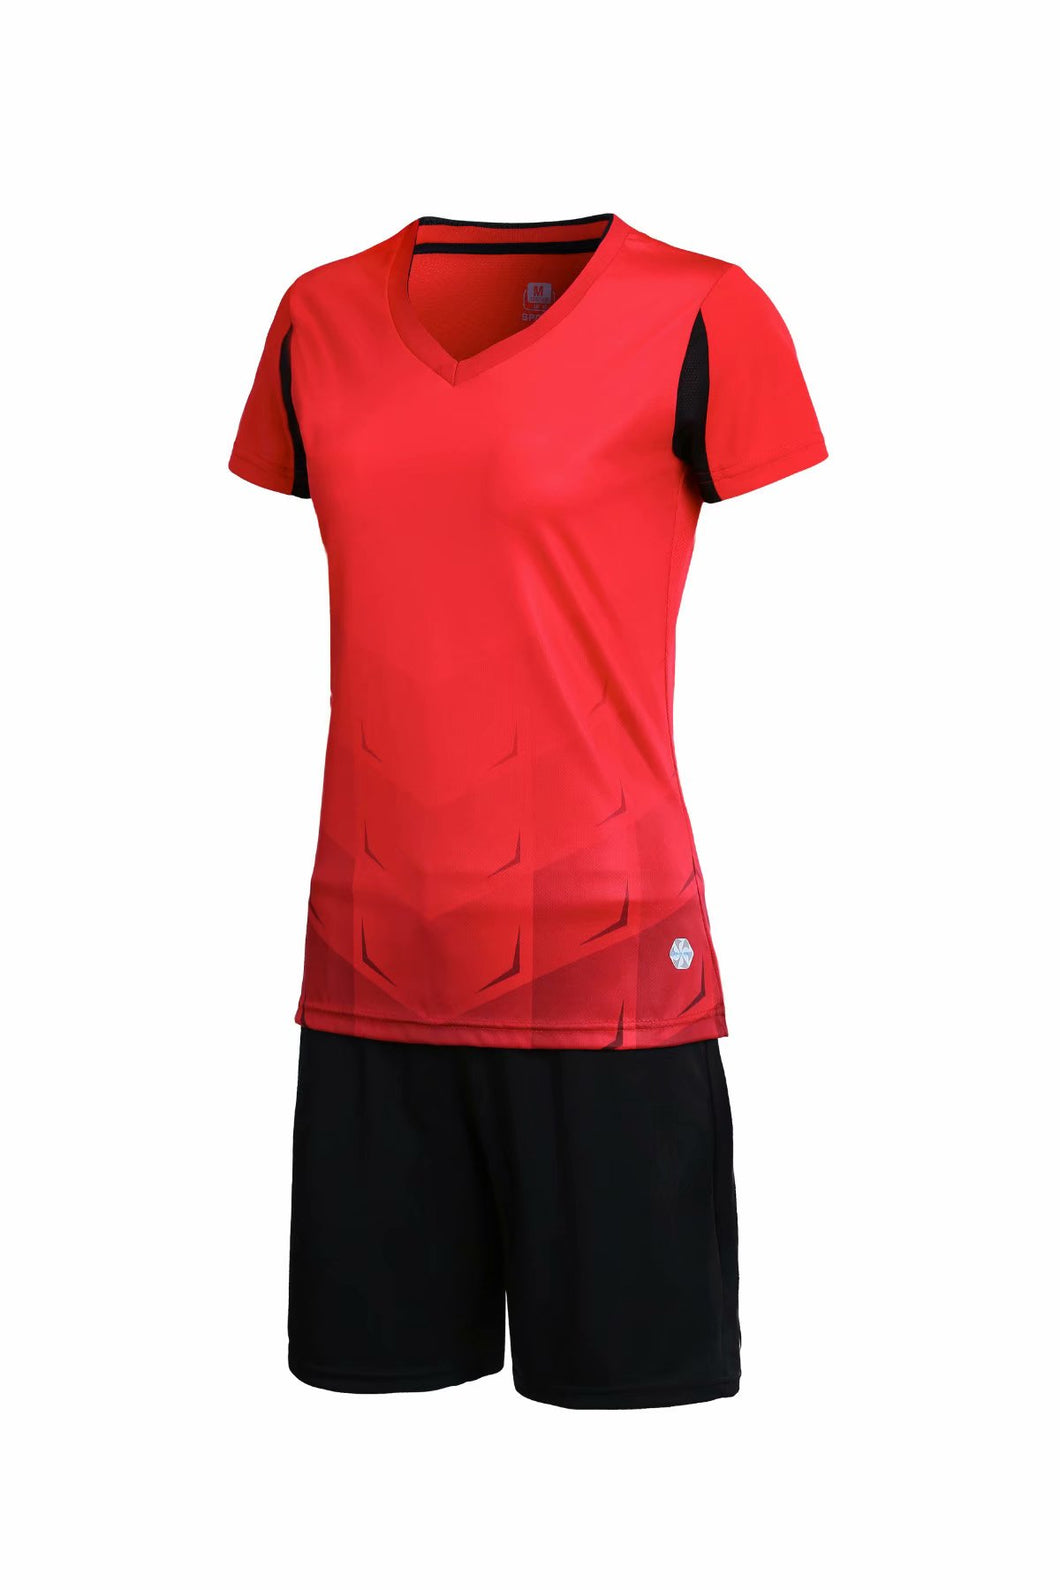 Full Football Kit - Red With Black Shorts.